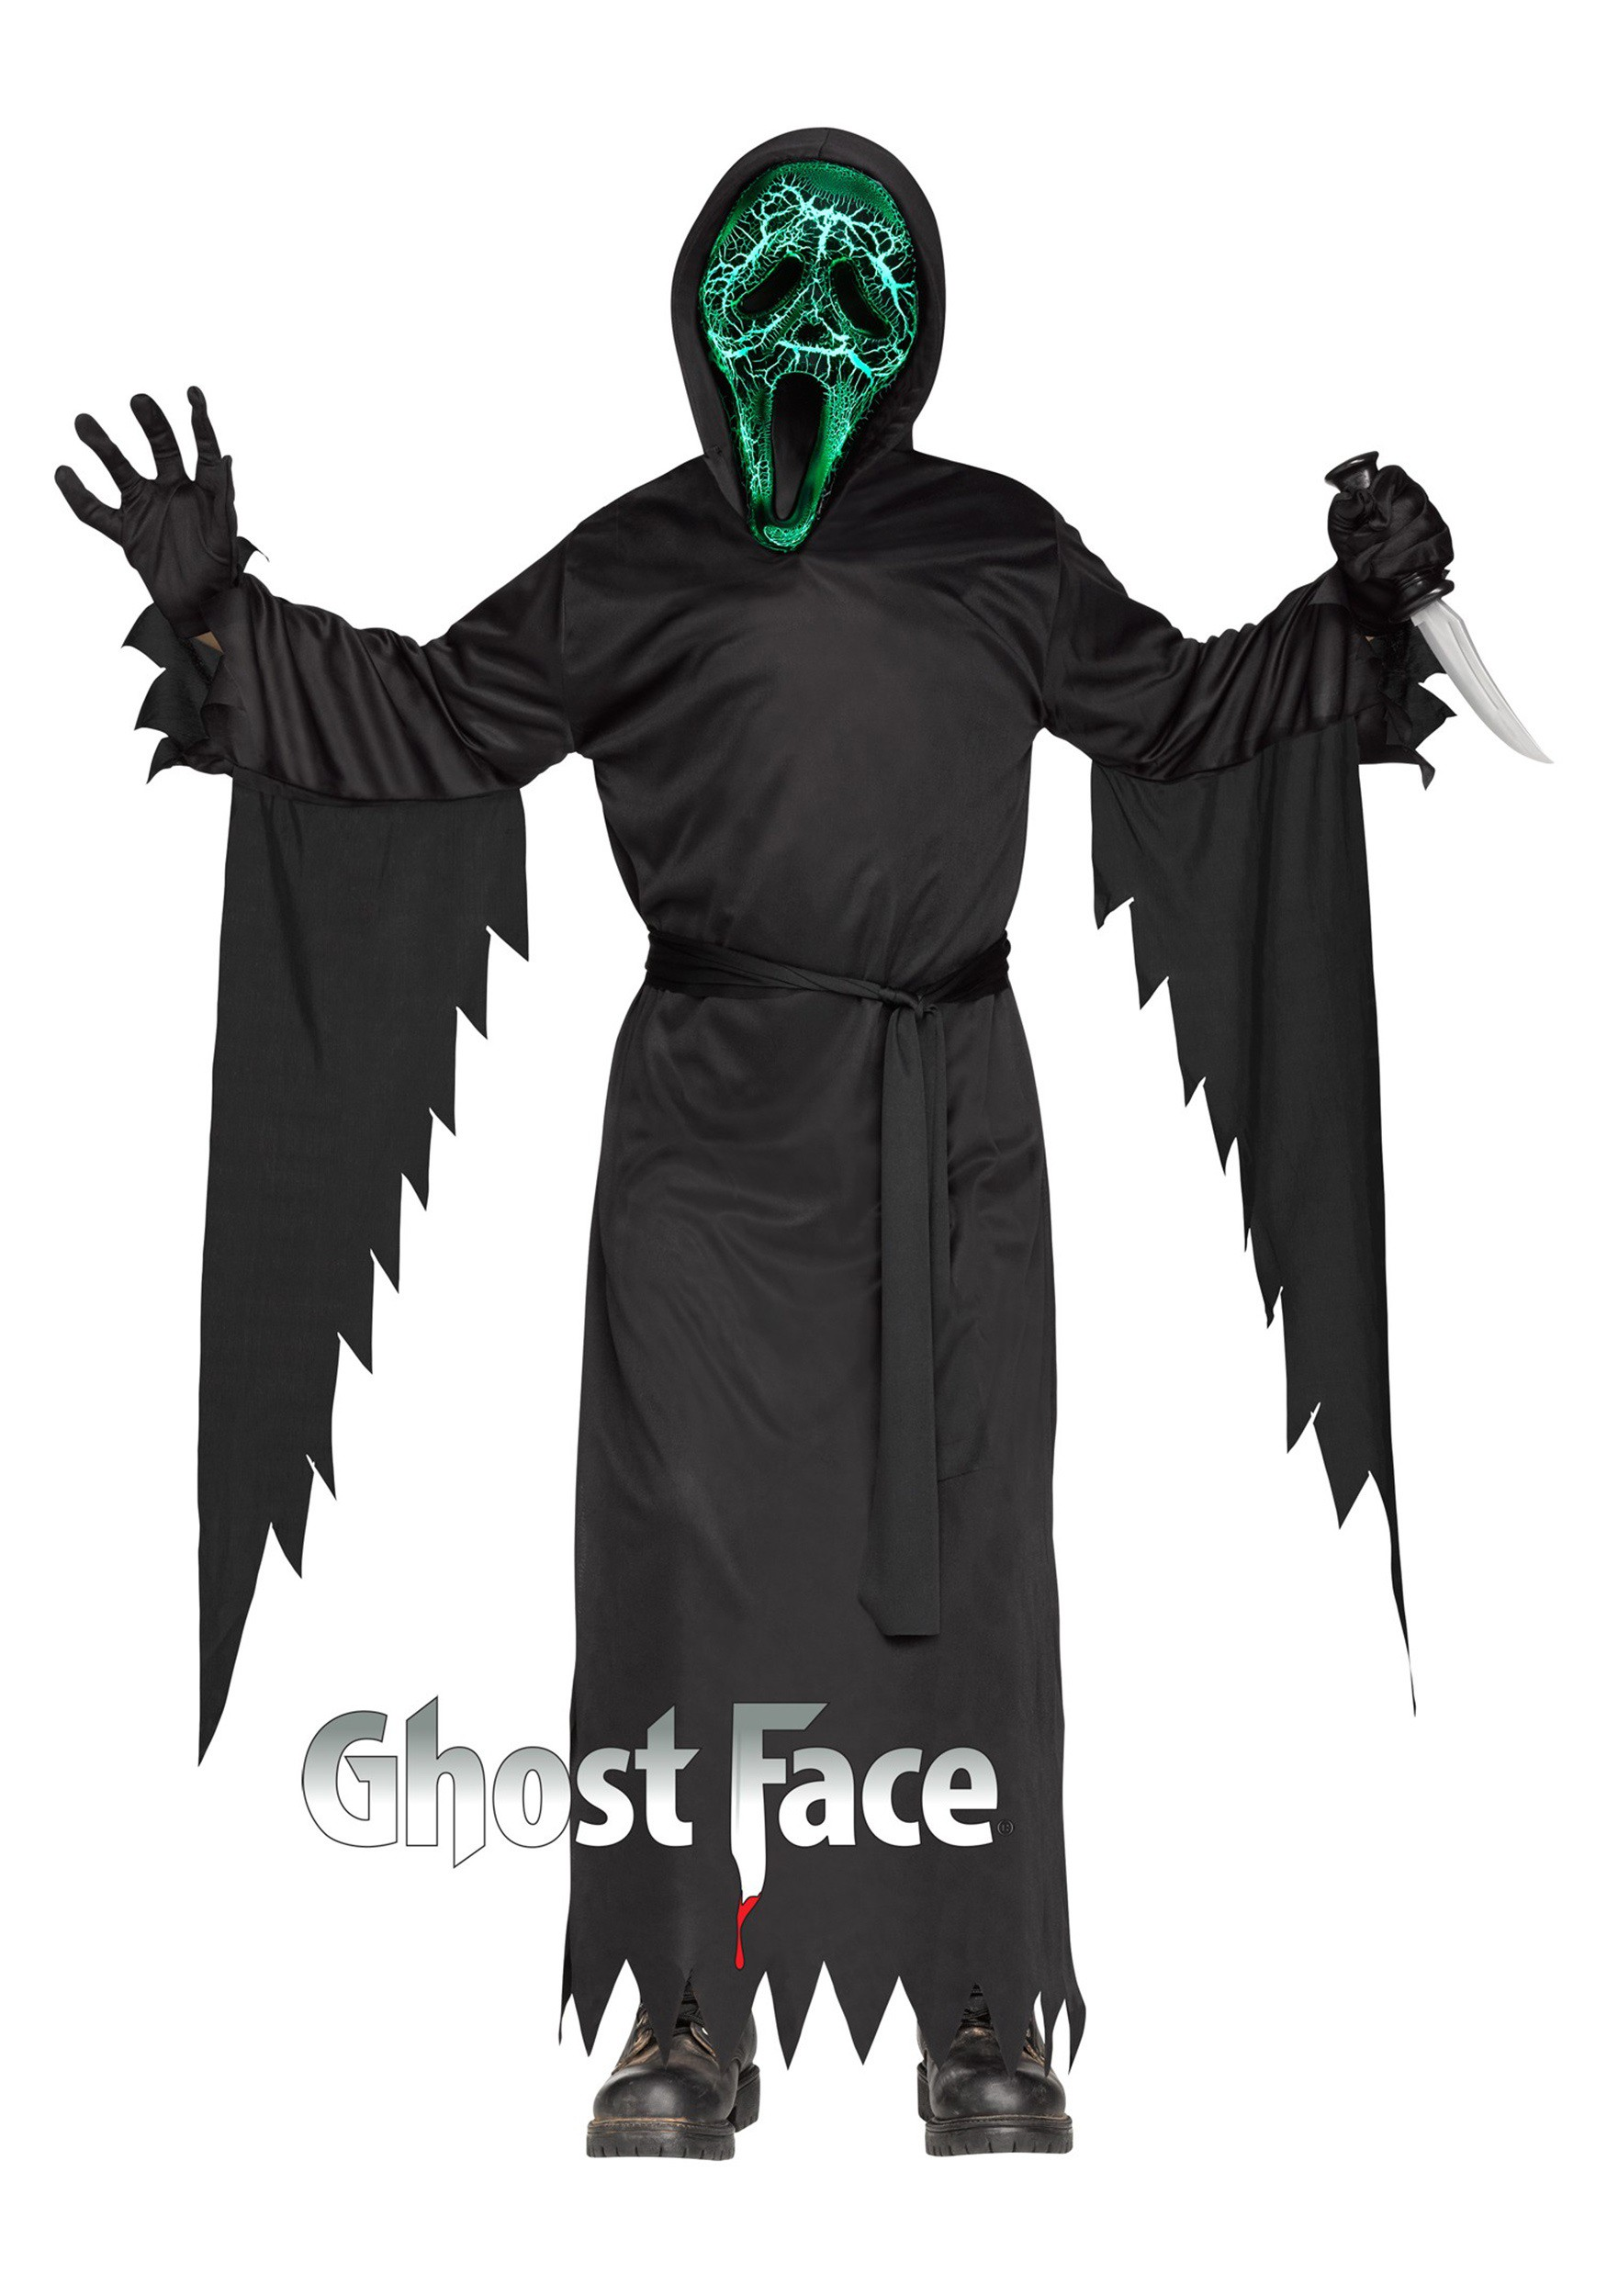 Child Smoldering Ghost Face Costume